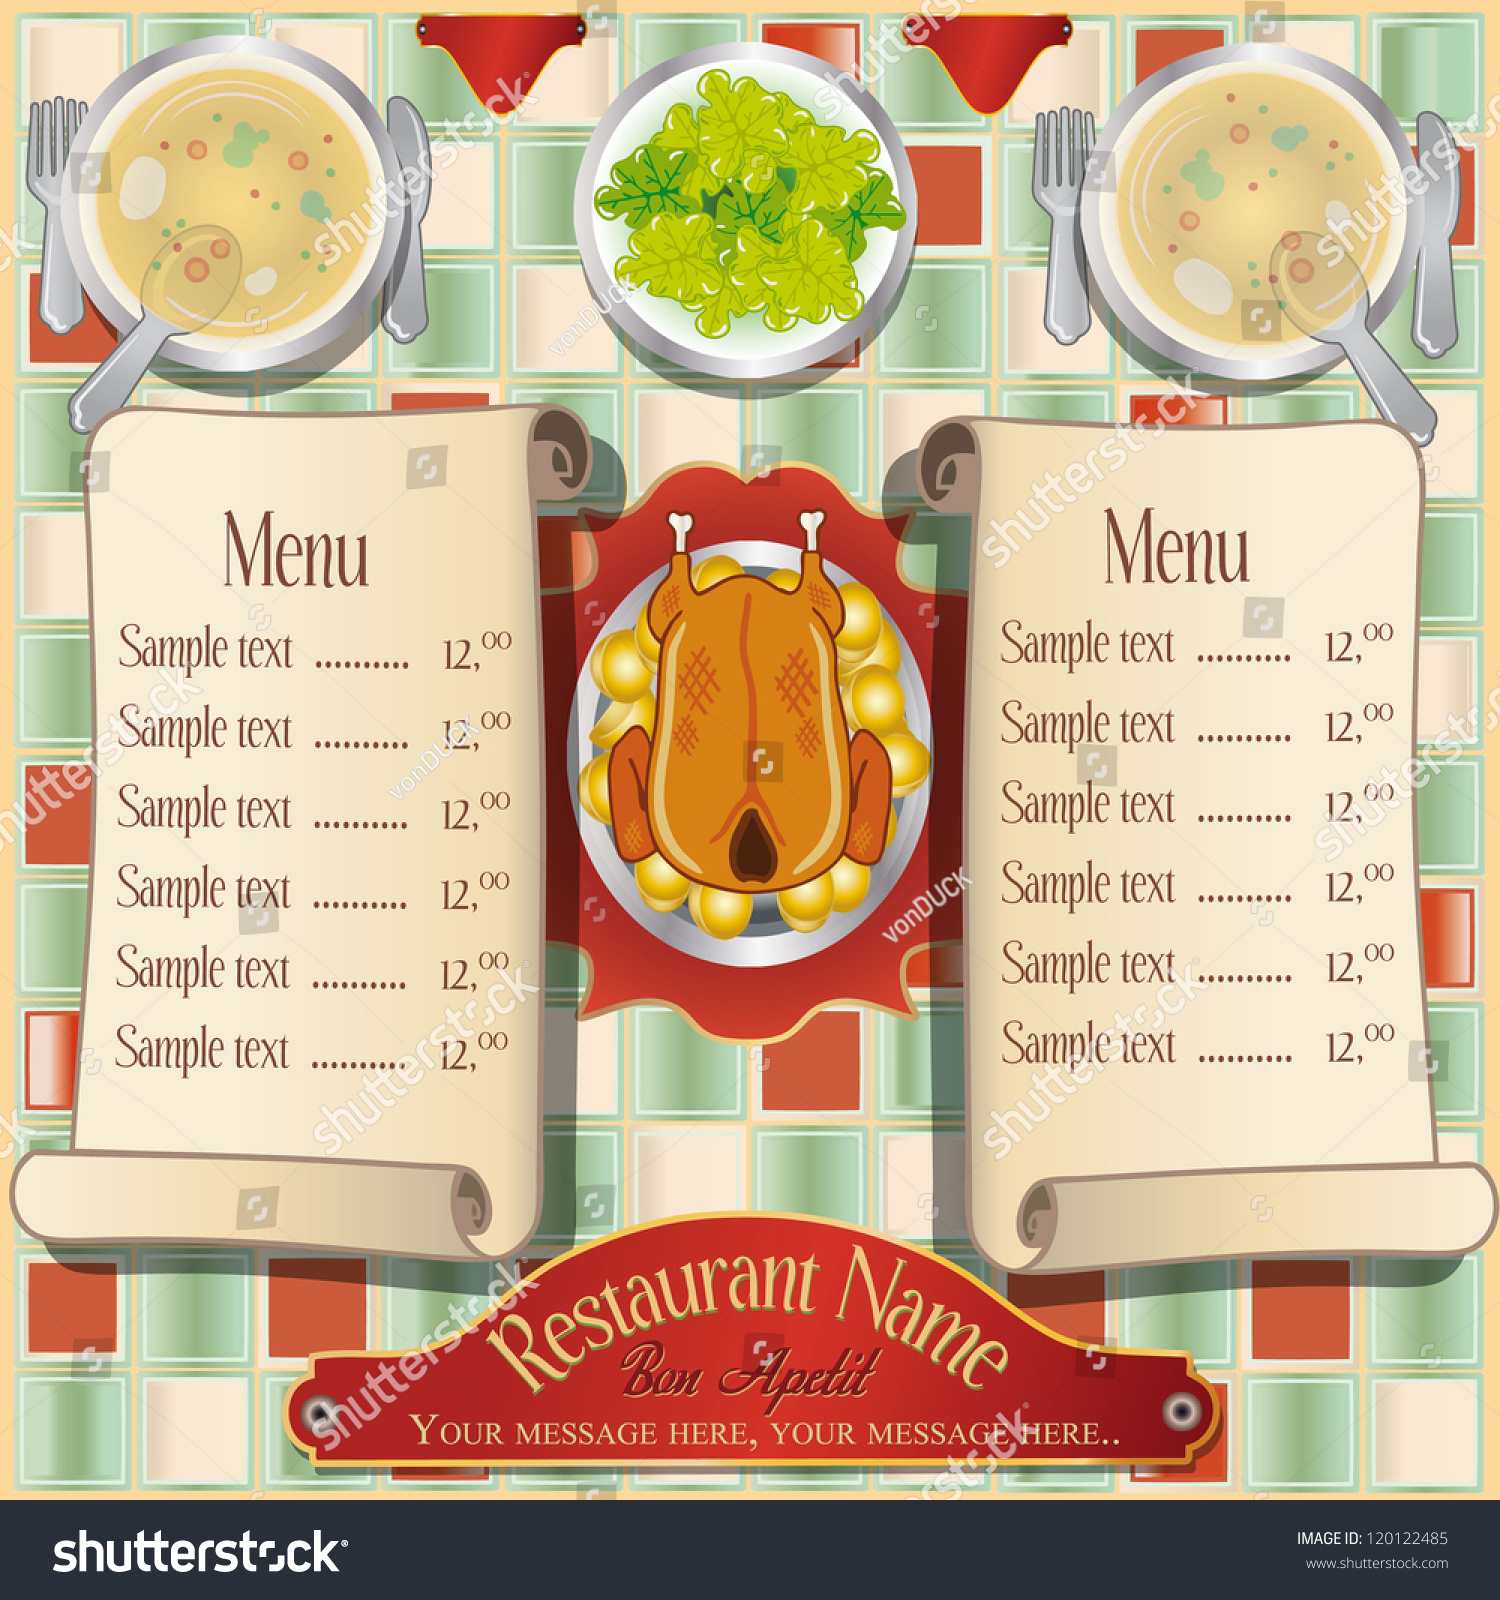 Restaurant Kitchen Illustration editable vector illustration chicken potatoes soup stock vector